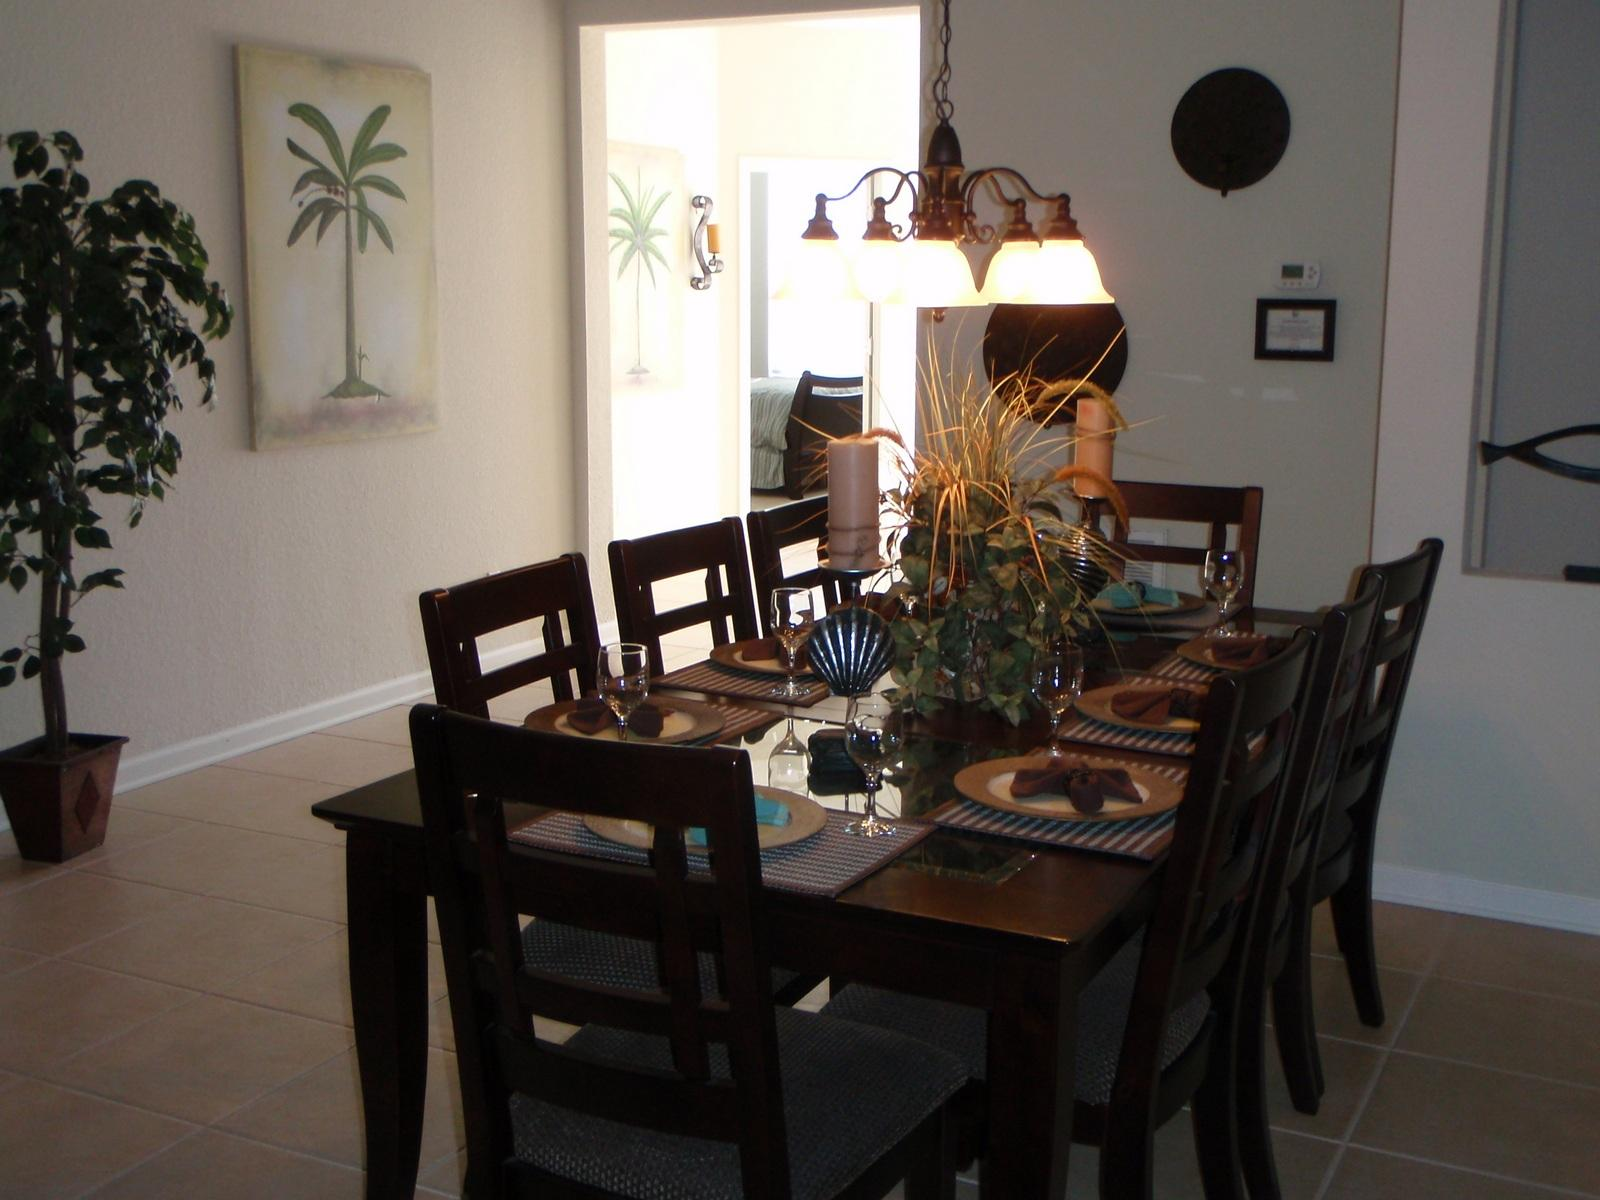 8 Seater Dining Table With Rough Tile Flooring And